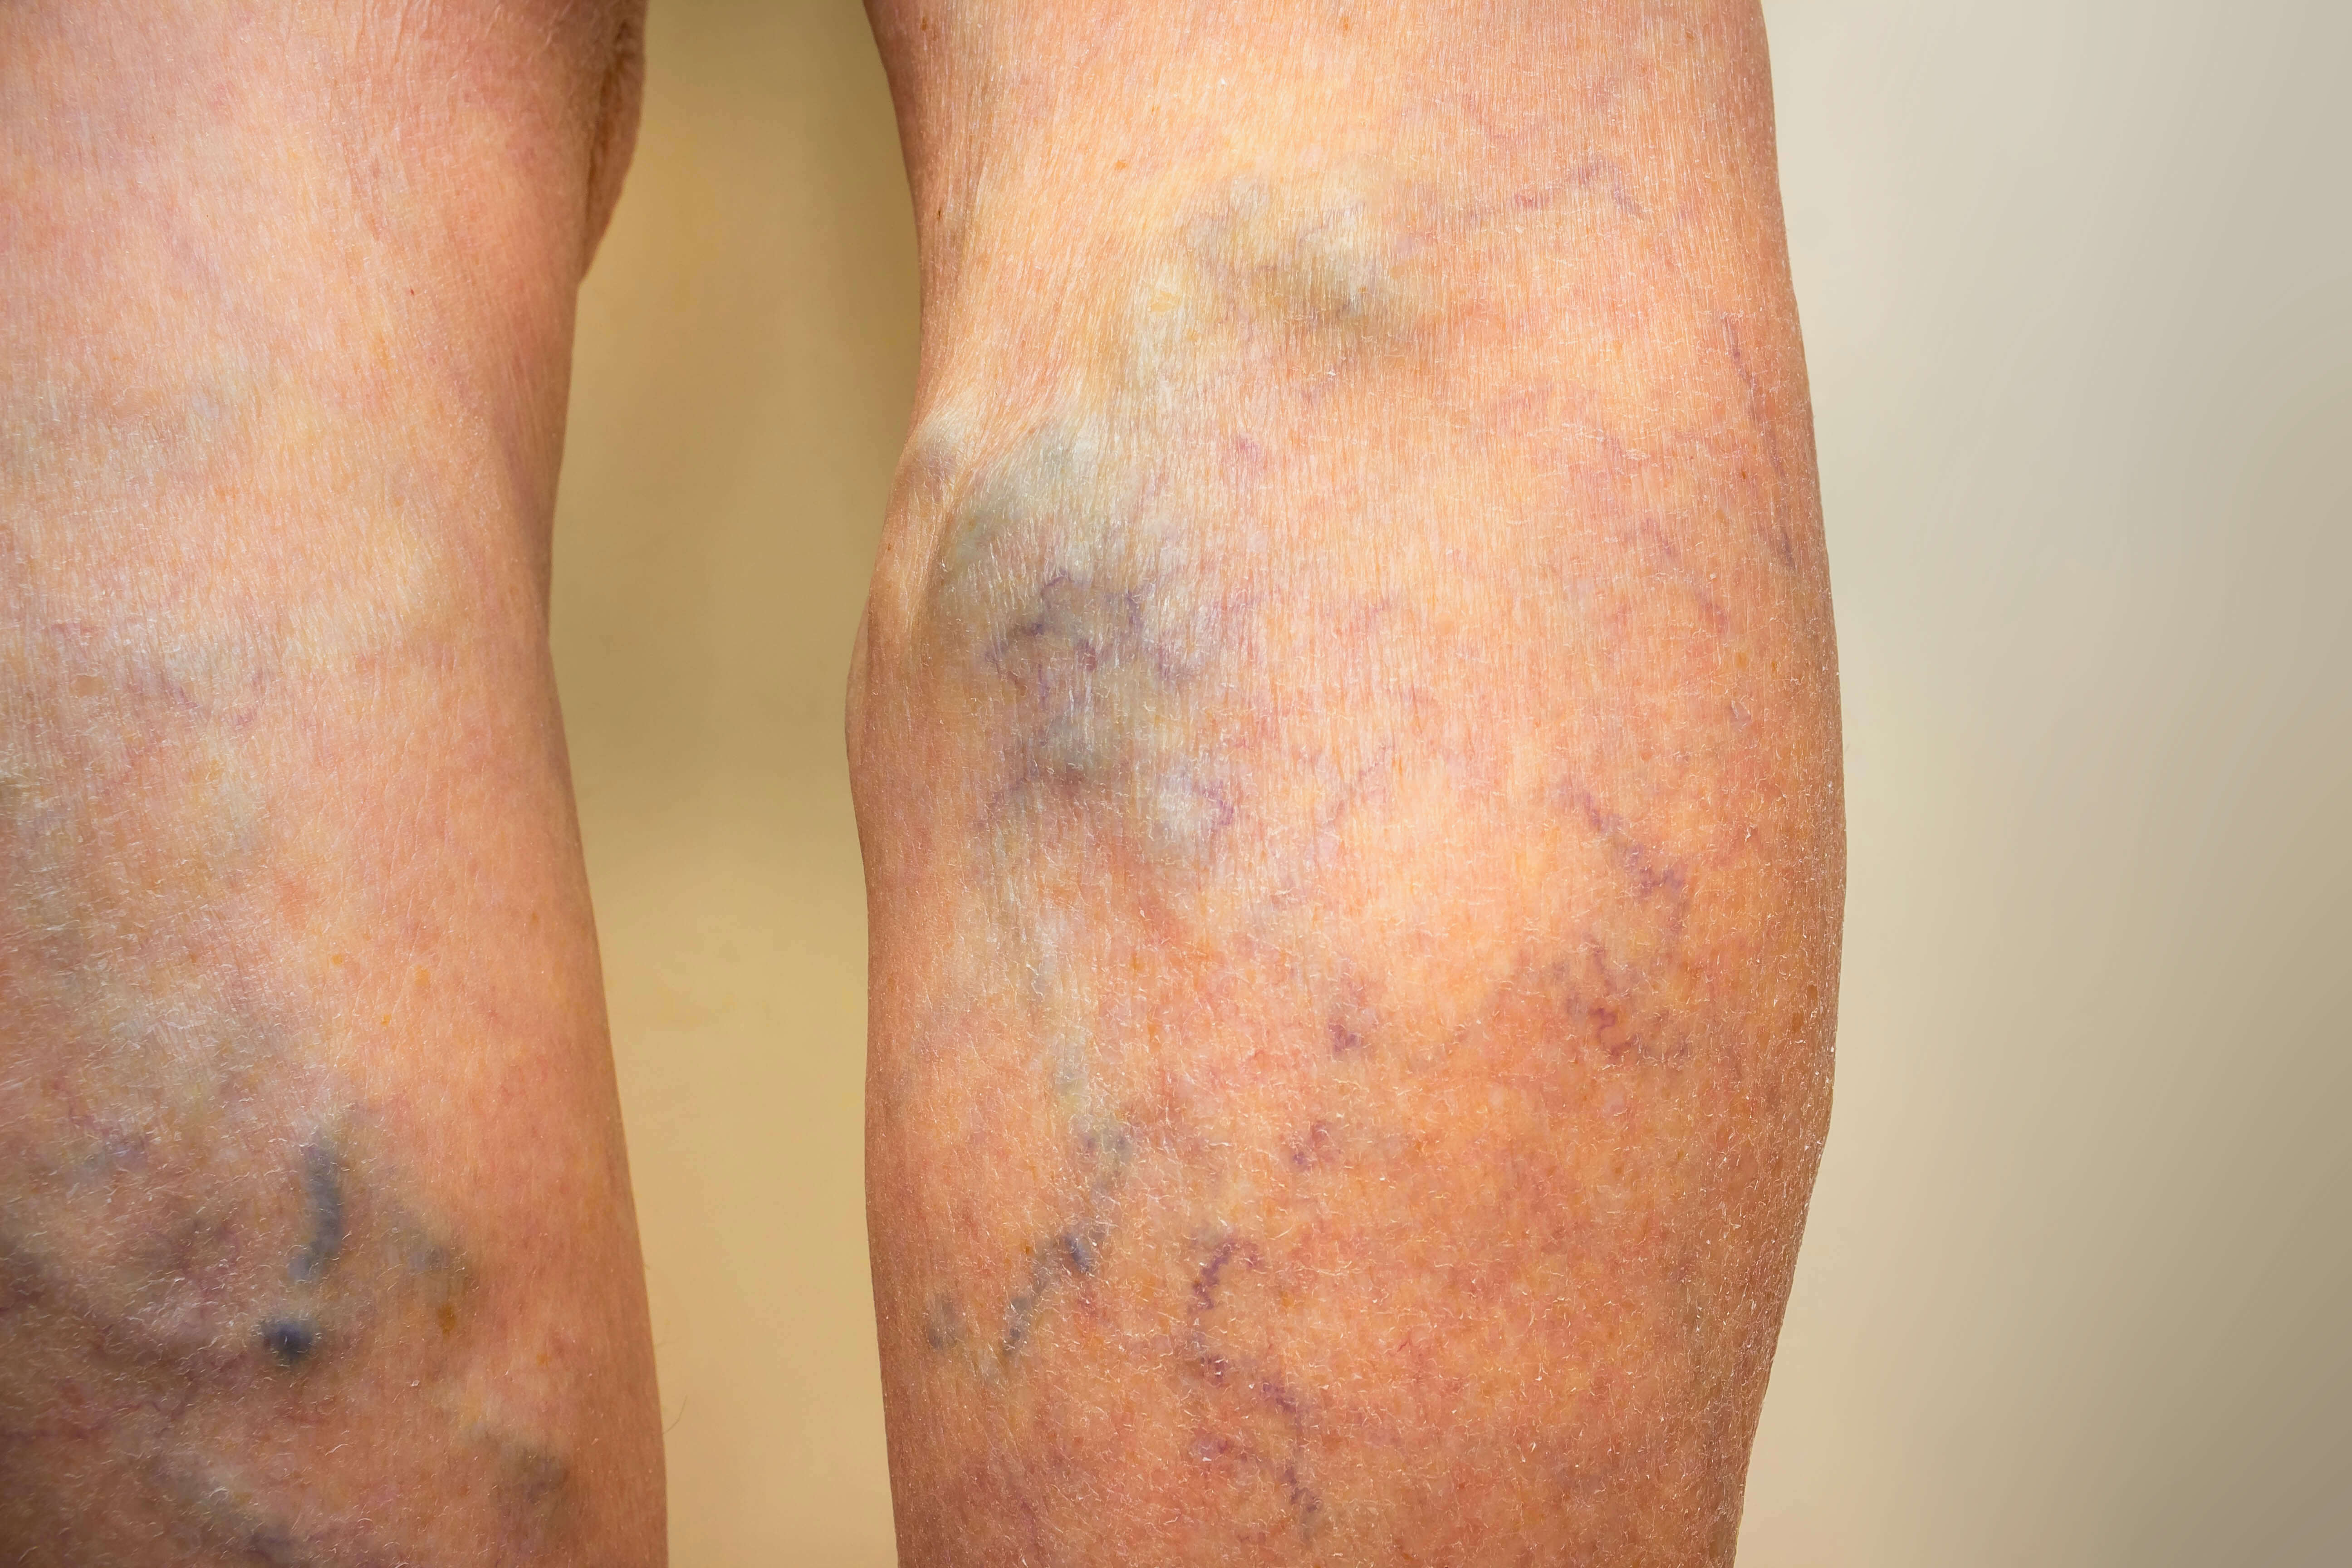 If you want to get treatment for varicose veins, a man factor that you would want to consider is cost. This articles explores the various options for low cost varicose vein treatment.